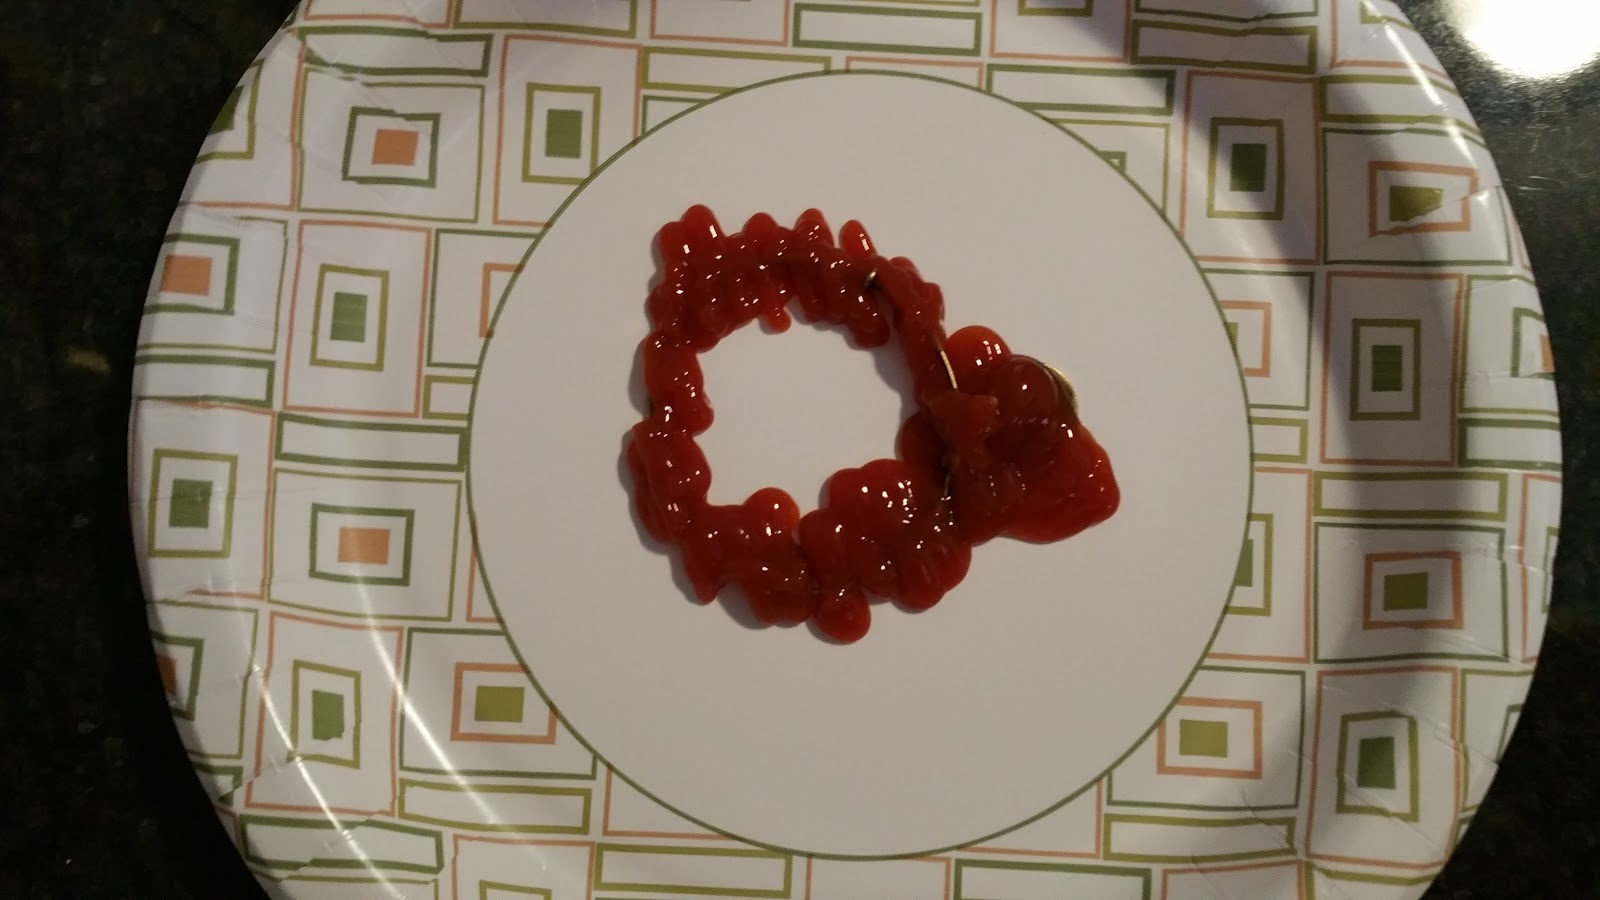 Cover In Ketchup And Let Sit For 5 Minutes